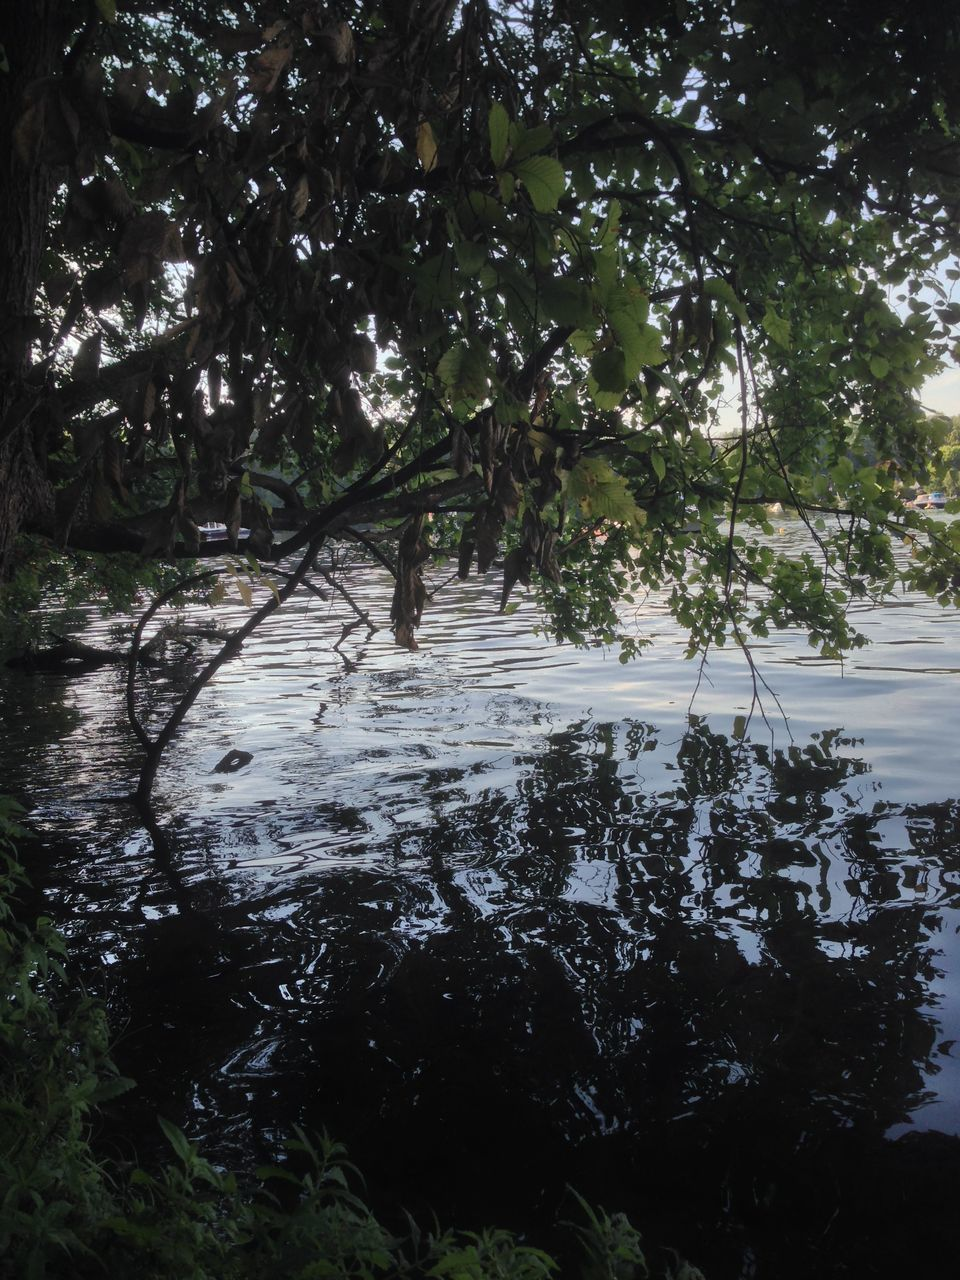 tree, nature, water, growth, outdoors, tranquility, no people, river, day, tranquil scene, beauty in nature, scenics, landscape, forest, branch